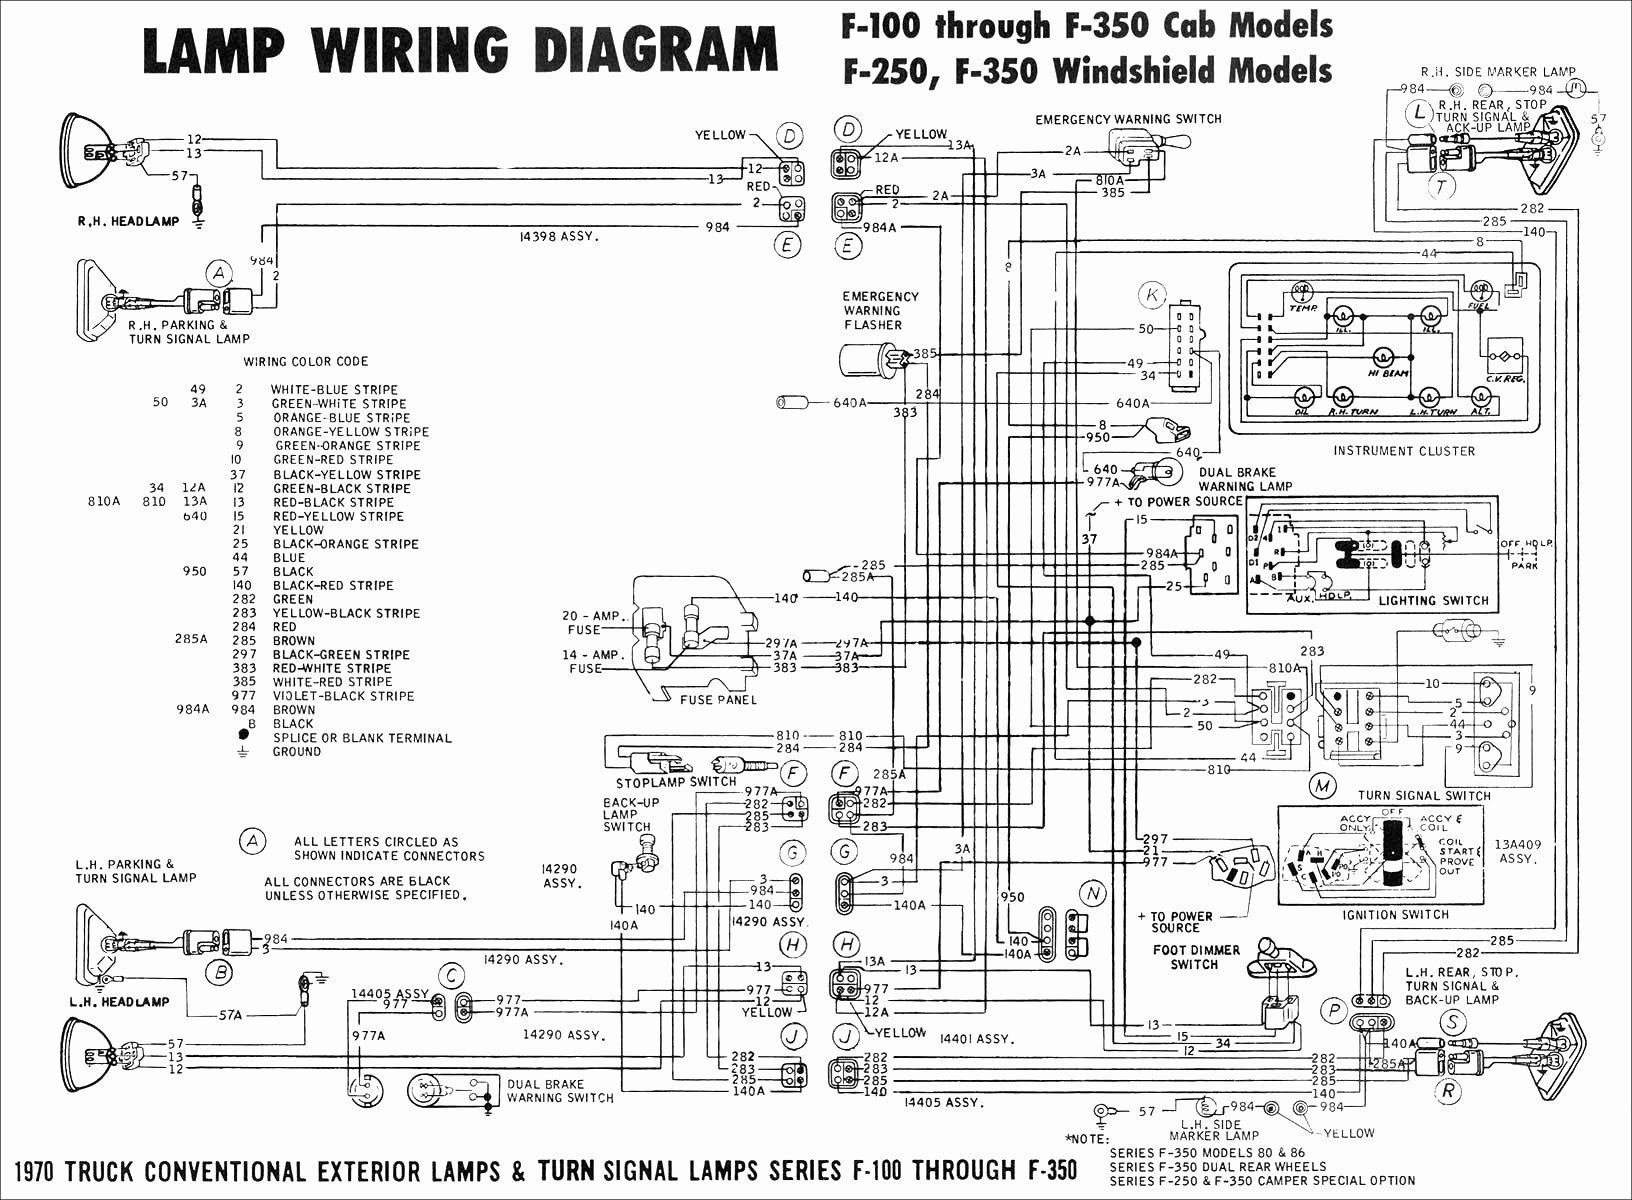 Kib Pcbm2 Wiring Diagram New